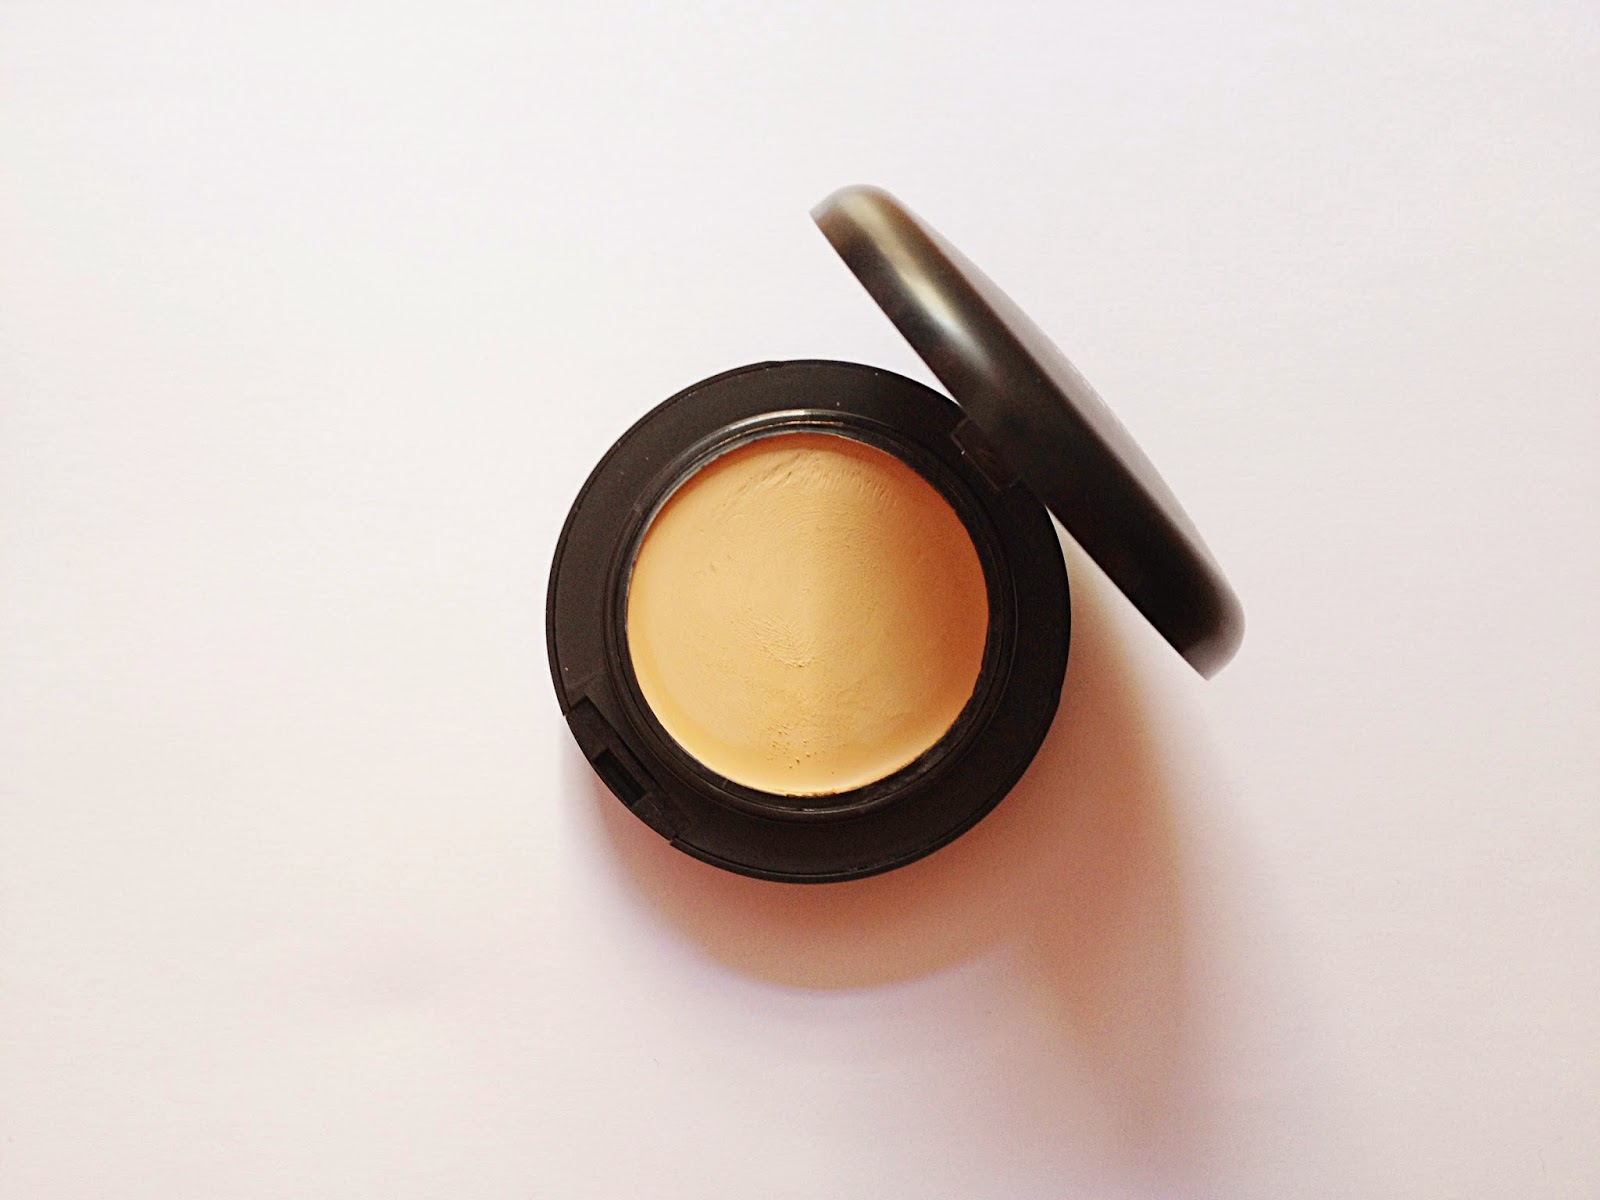 Mac Pro Longwear Compact Foundation